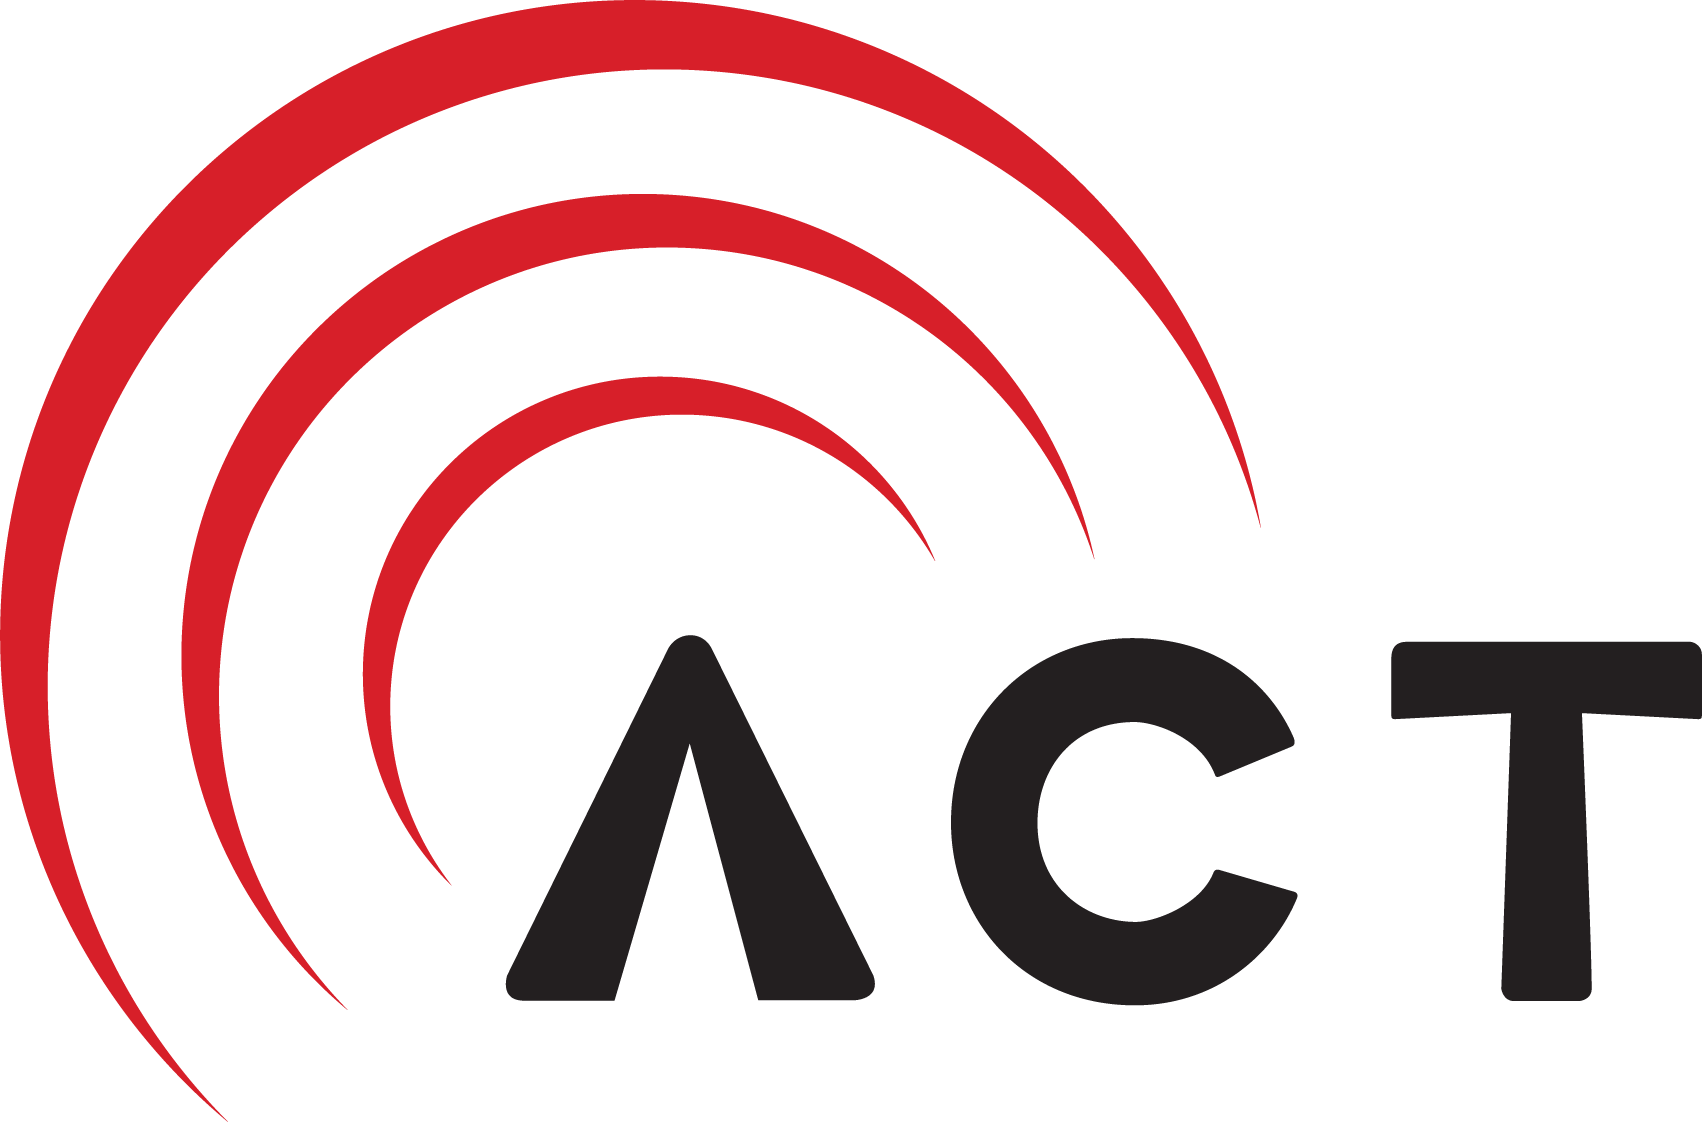 ACT_FullColor_ No Background.png